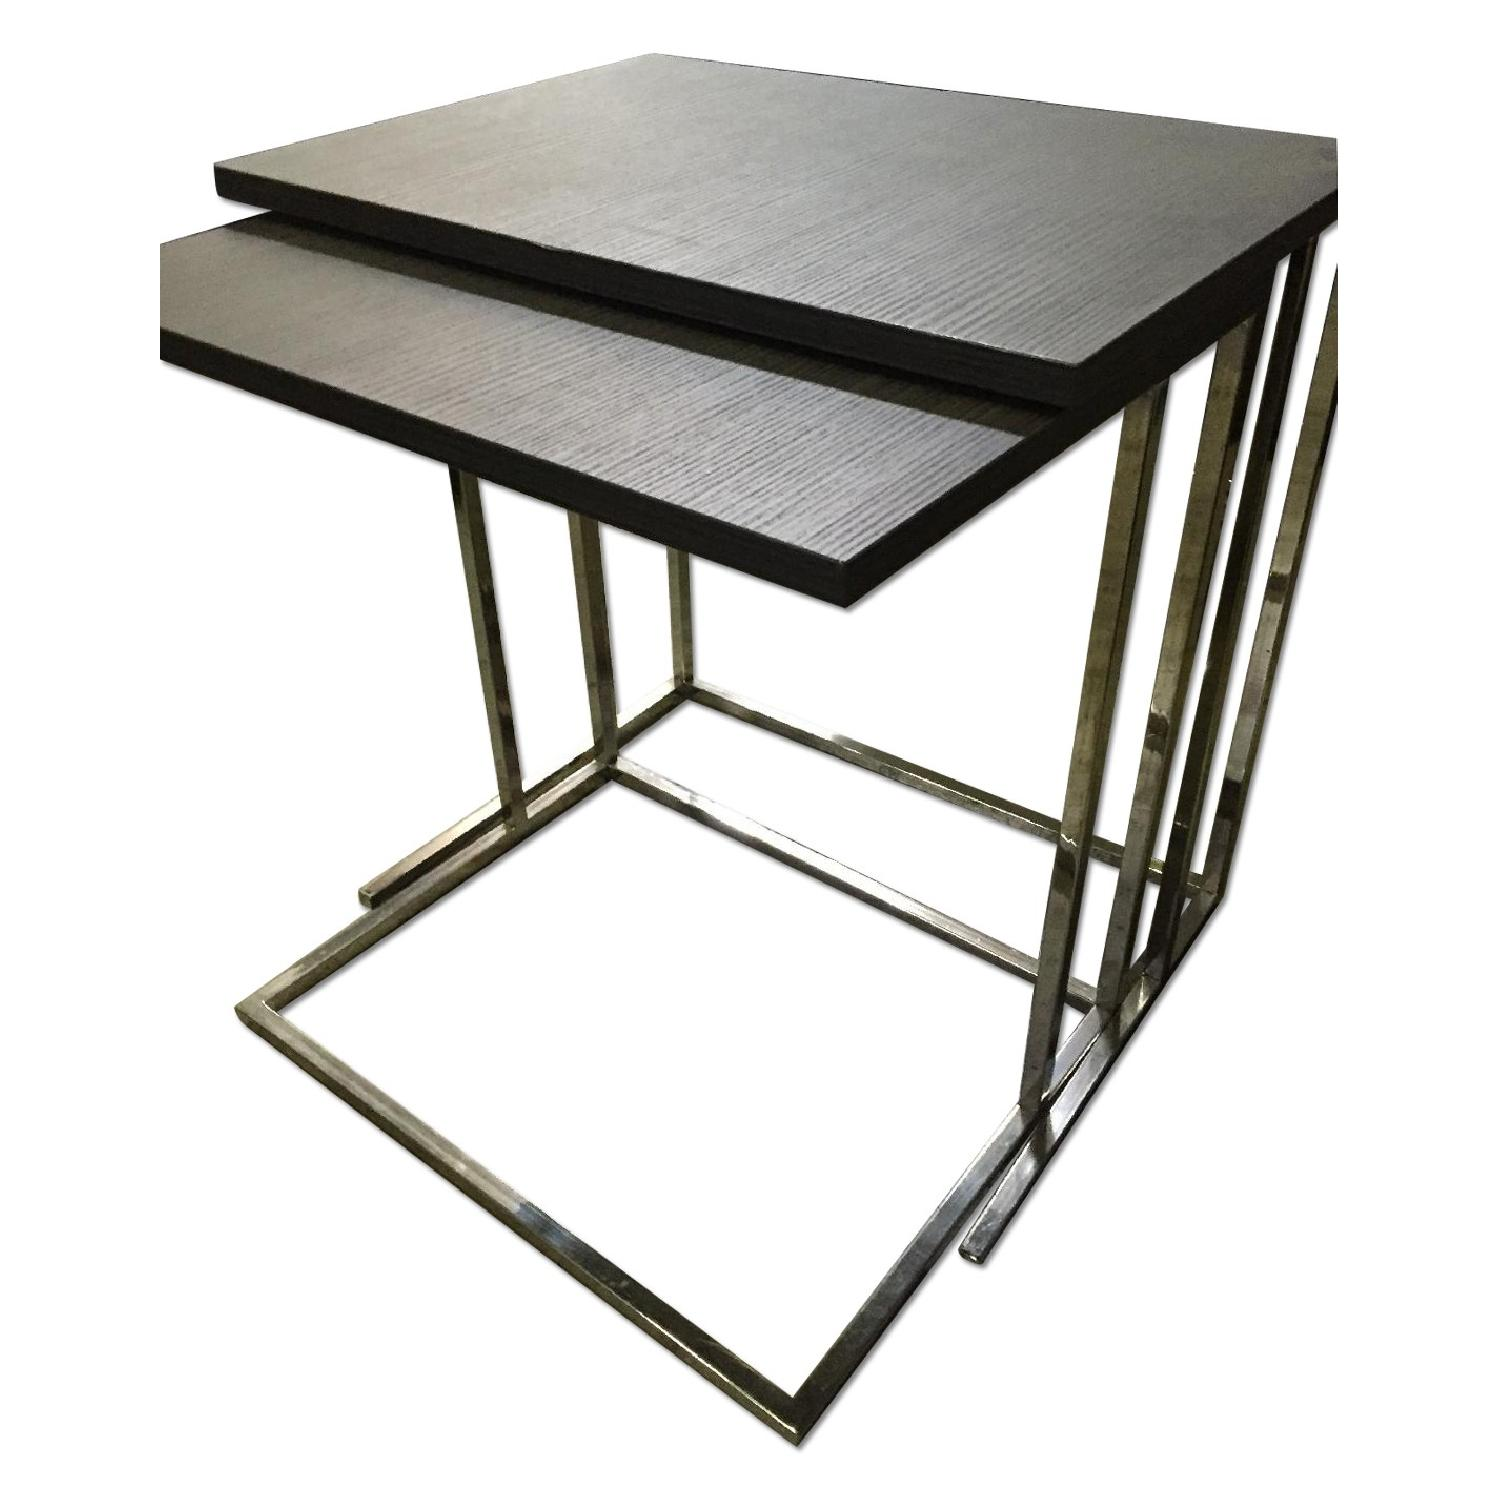 Lazzoni Brown Wood Nesting Tables - image-0